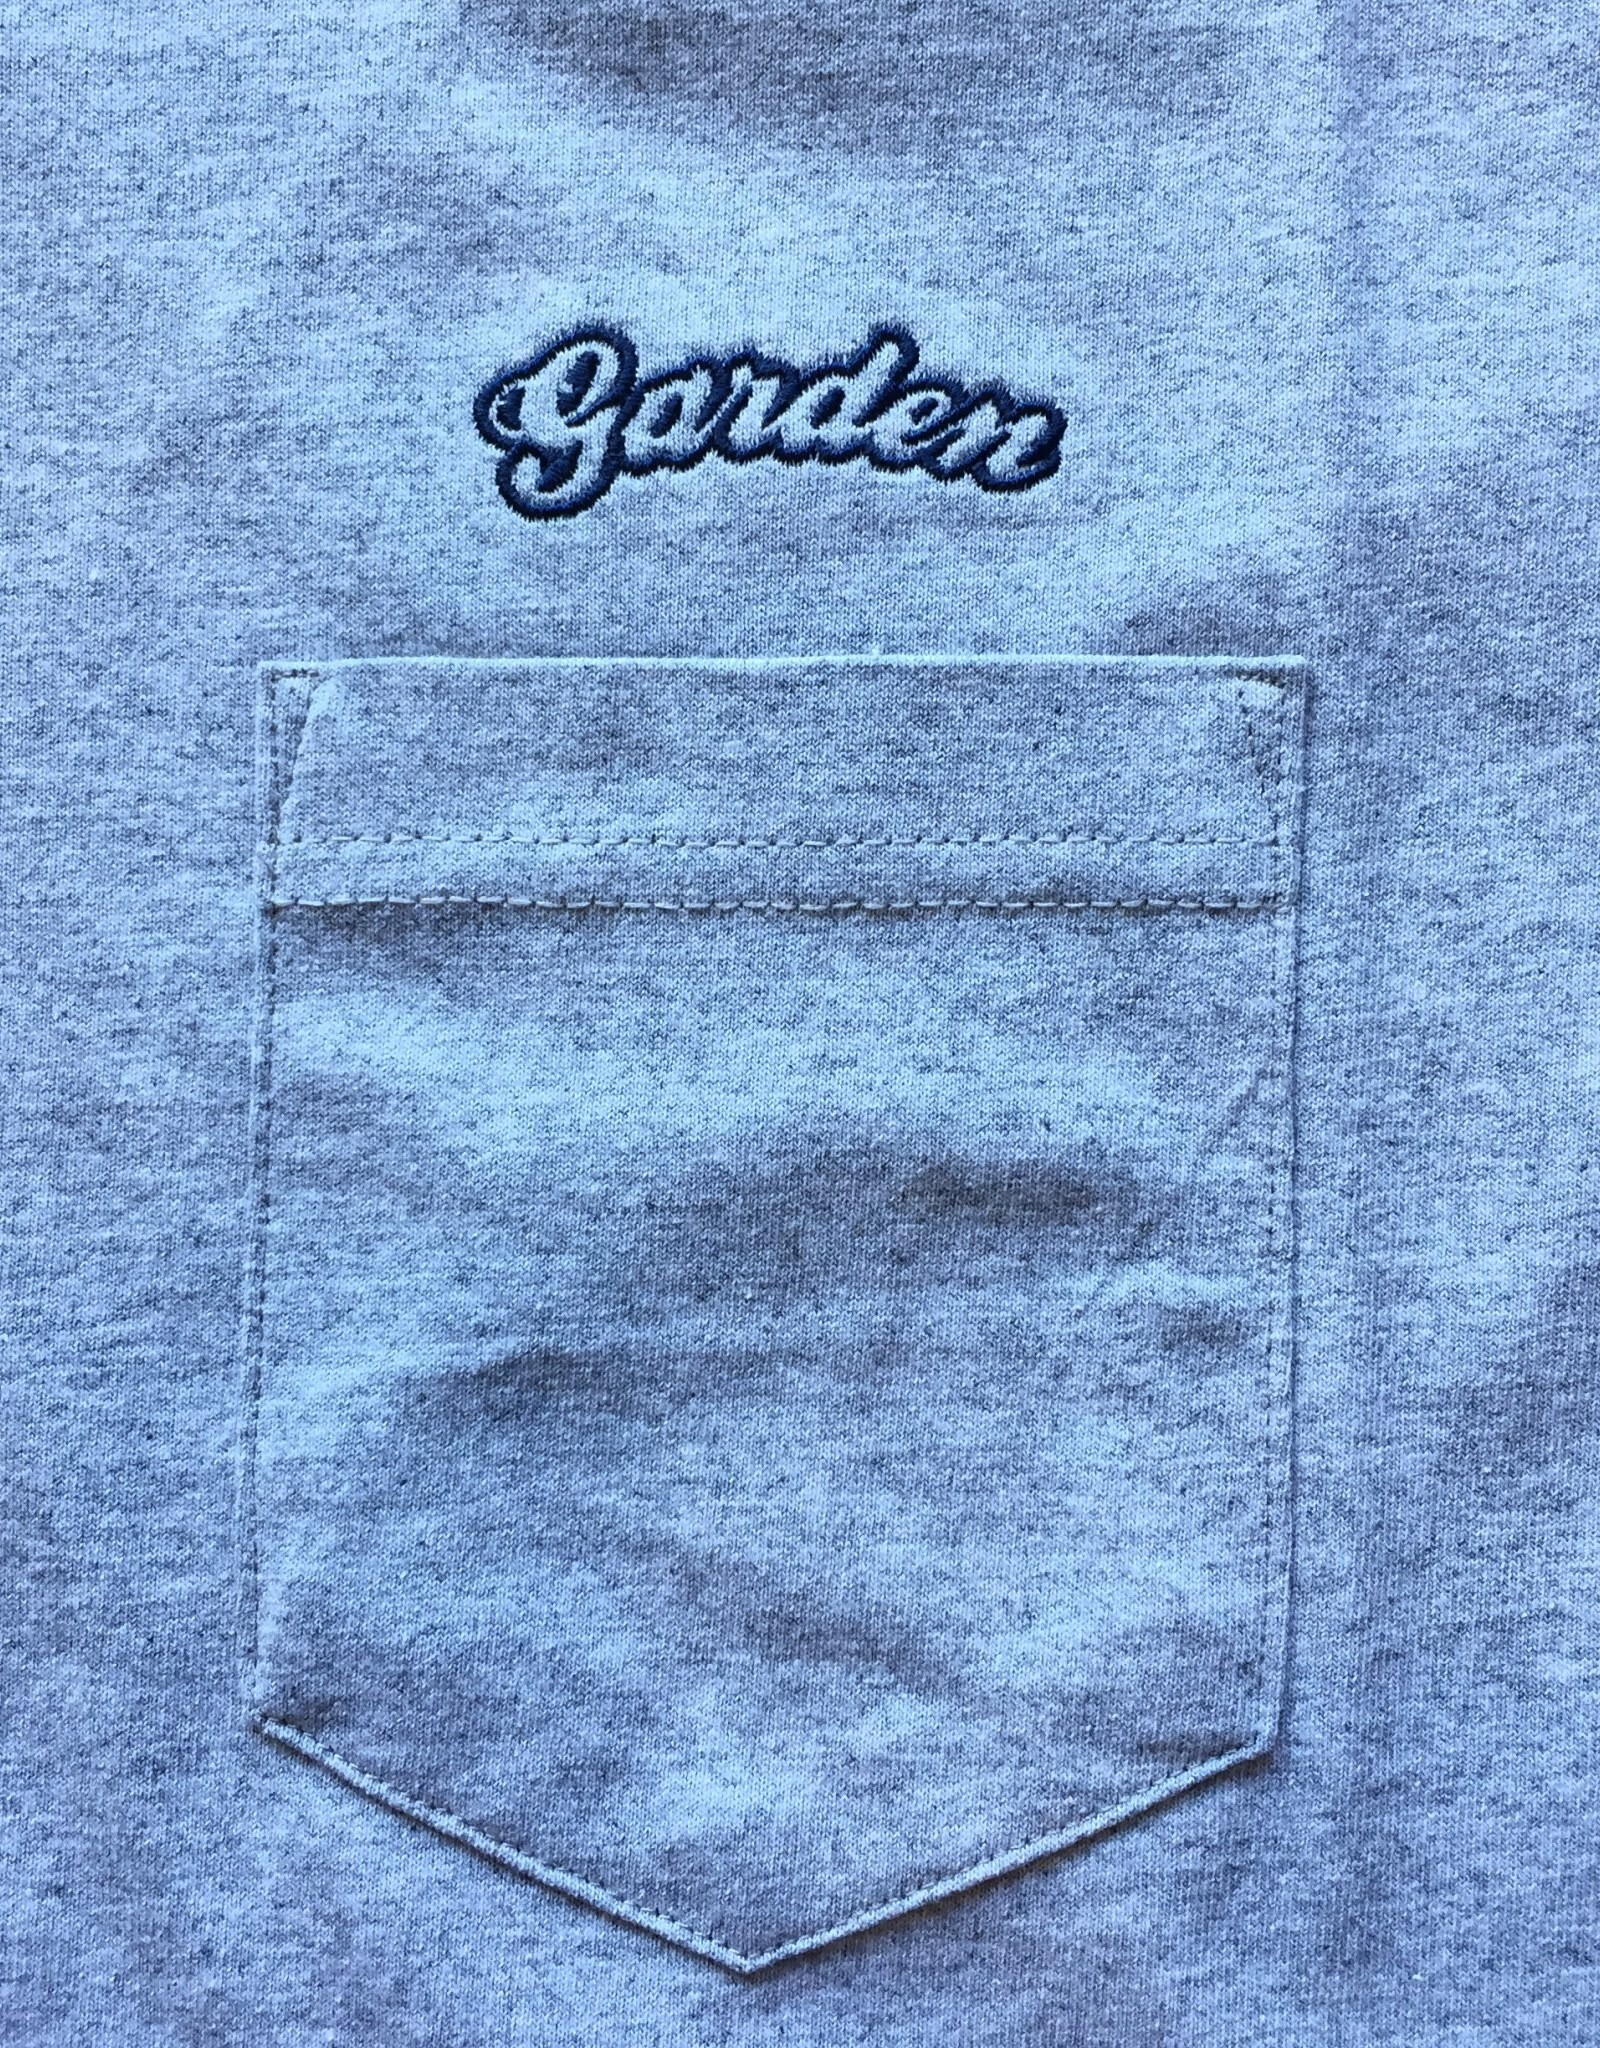 GARDEN EMBROIDERED GARDEN BUBBLE POCKET TEE